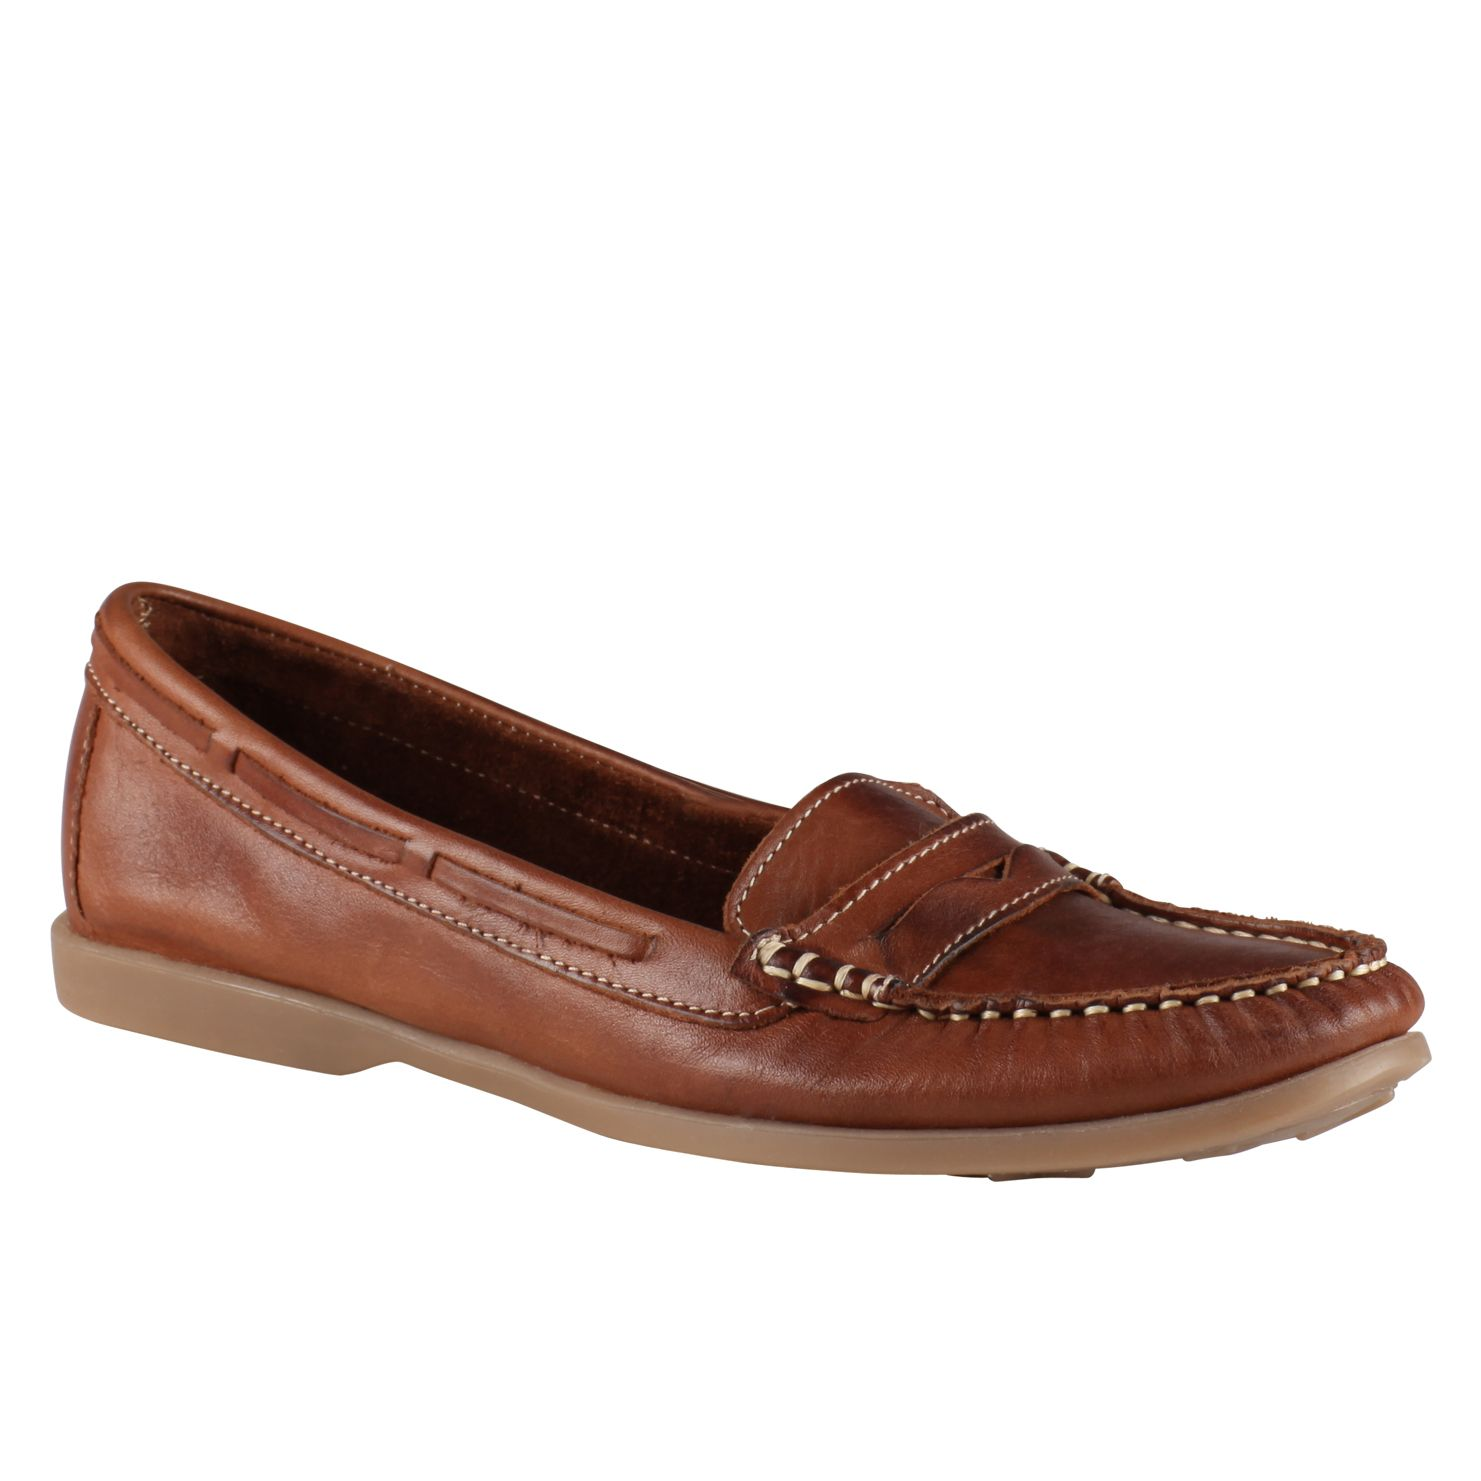 Catrin loafers